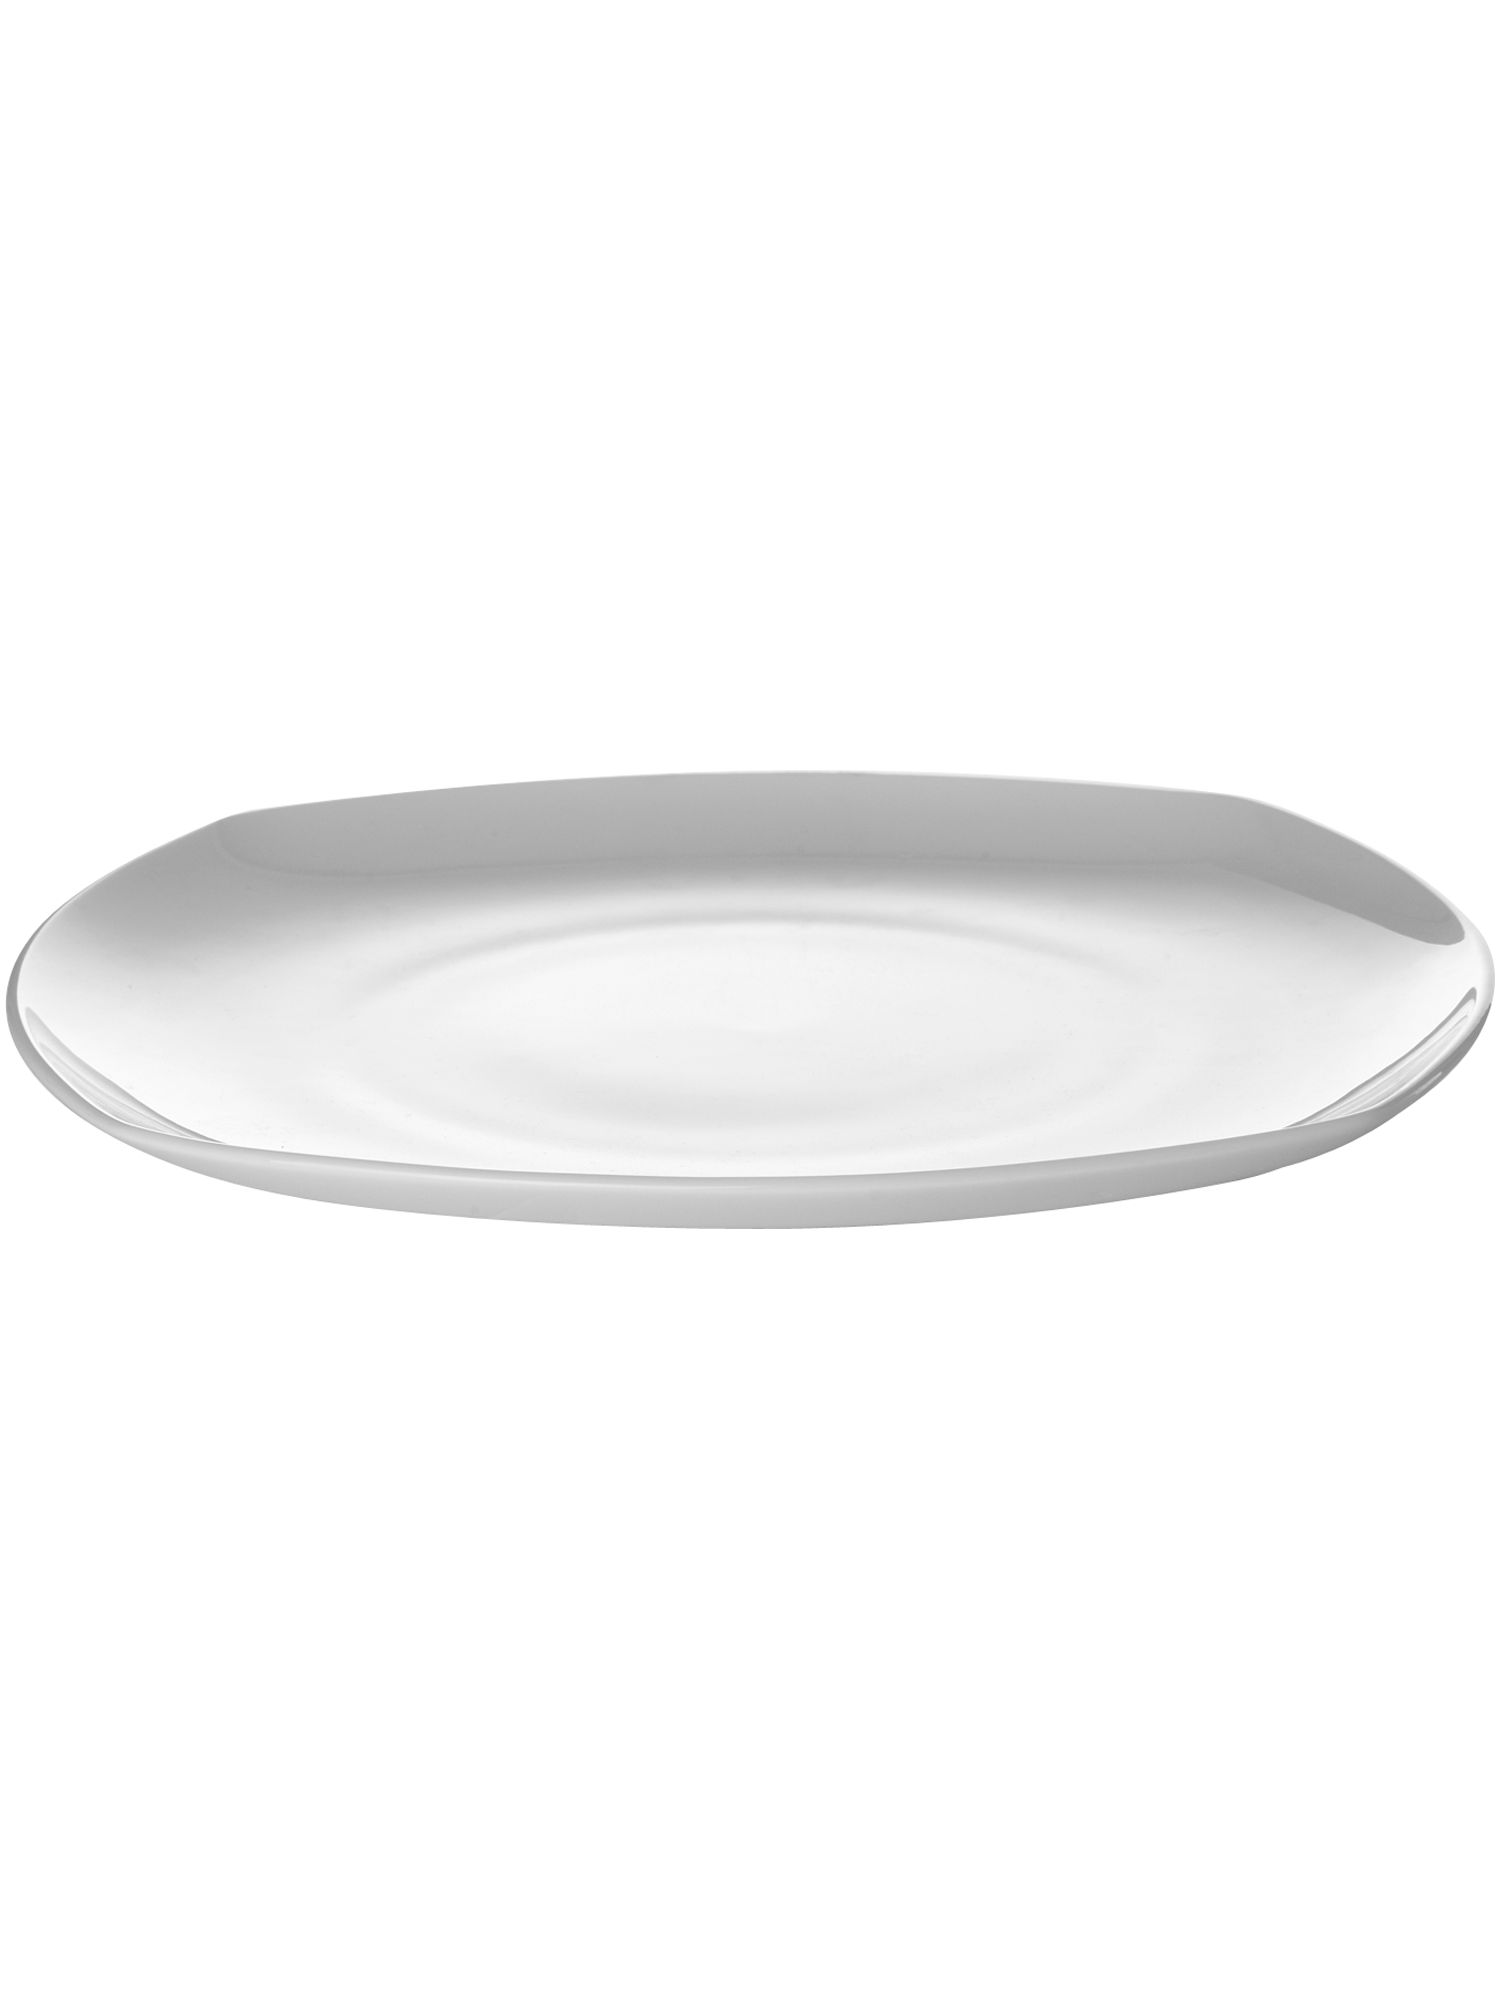 Eternal Square dinner plate